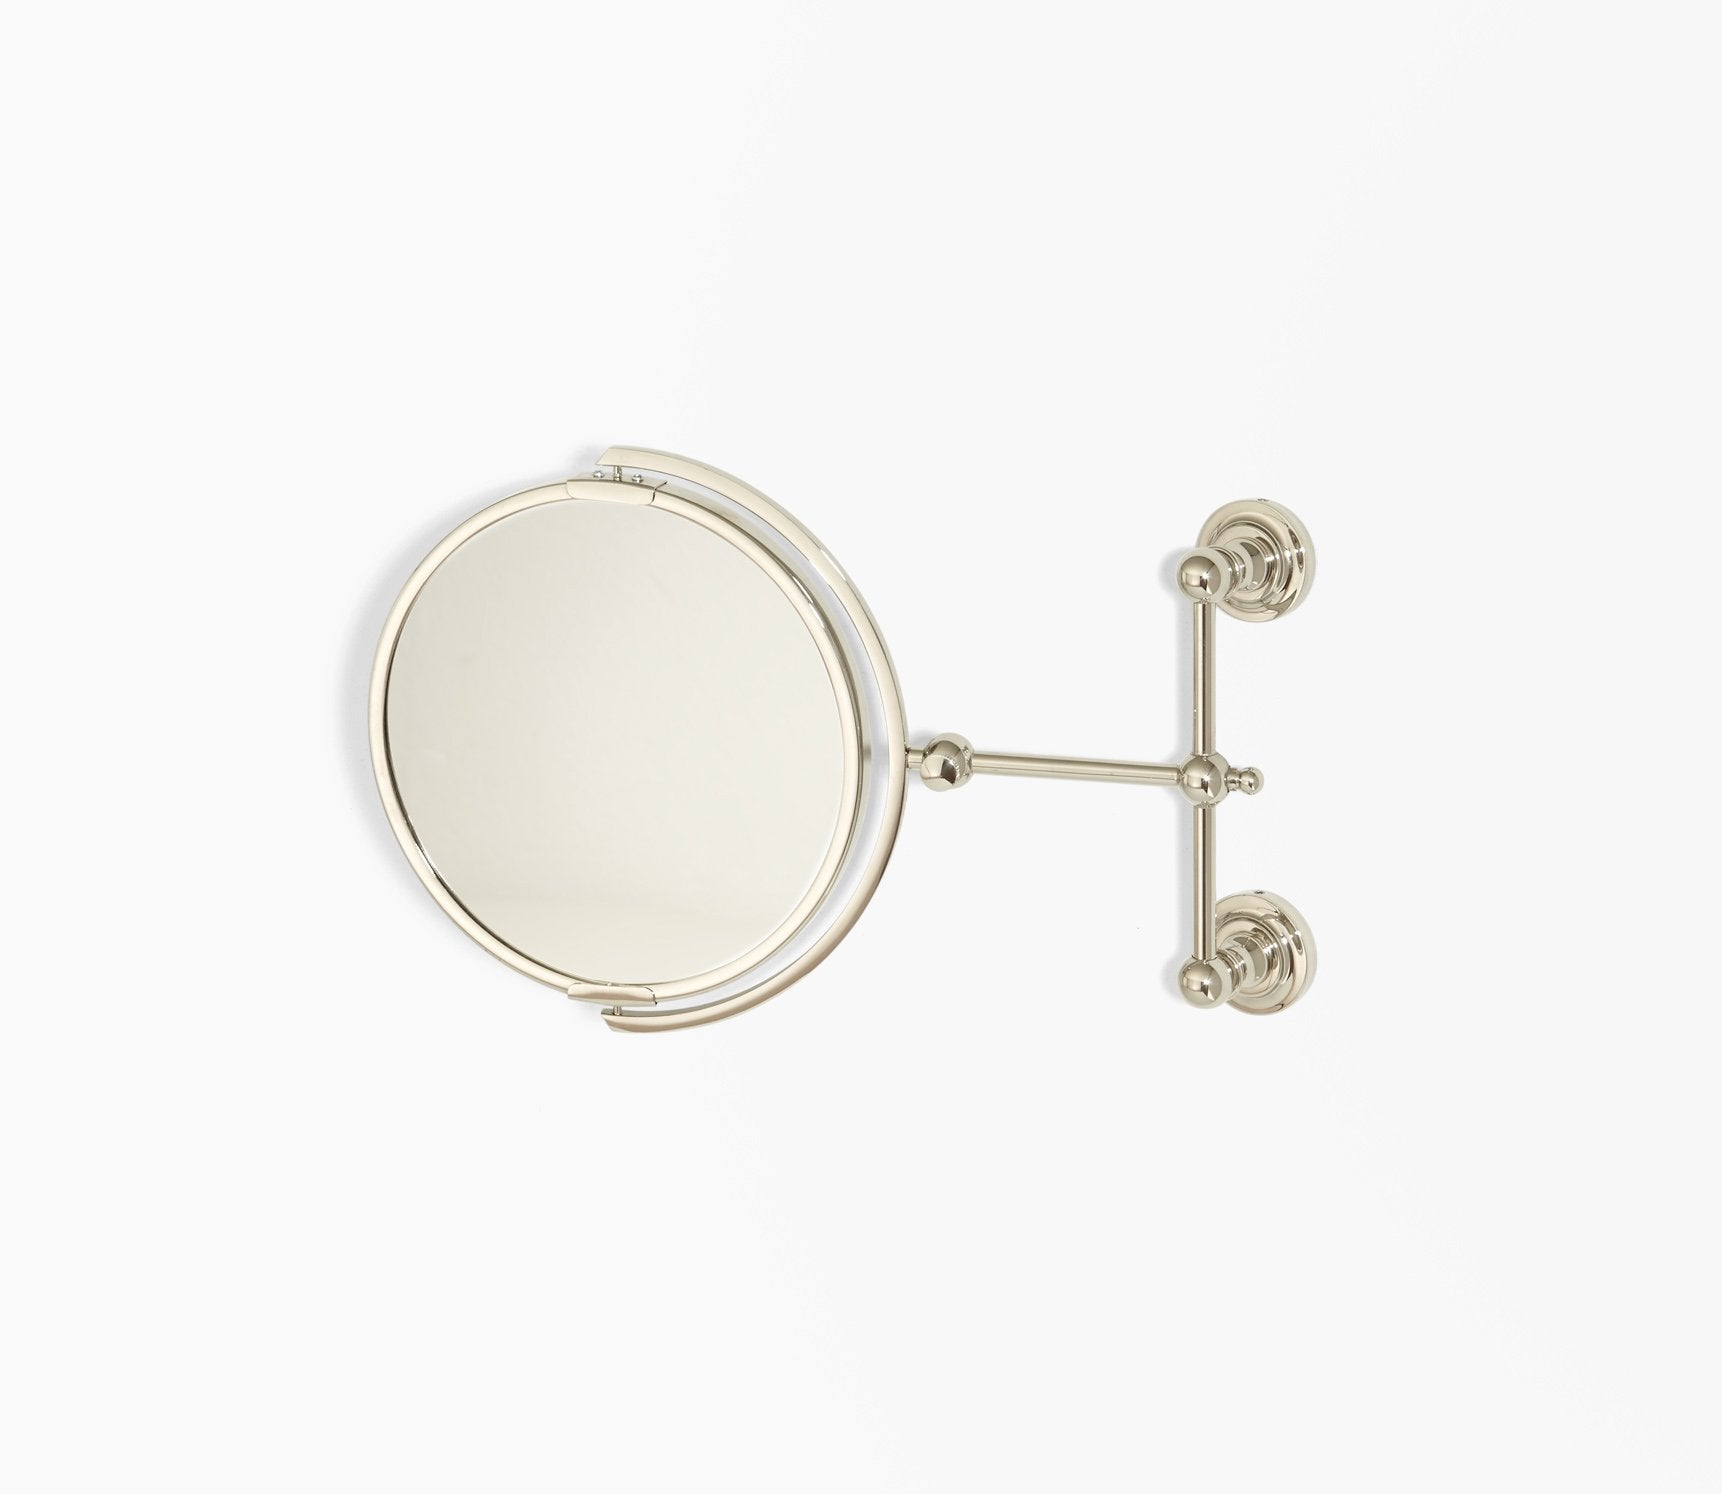 Hanbury Pivot Wall Mirror Product Image 1